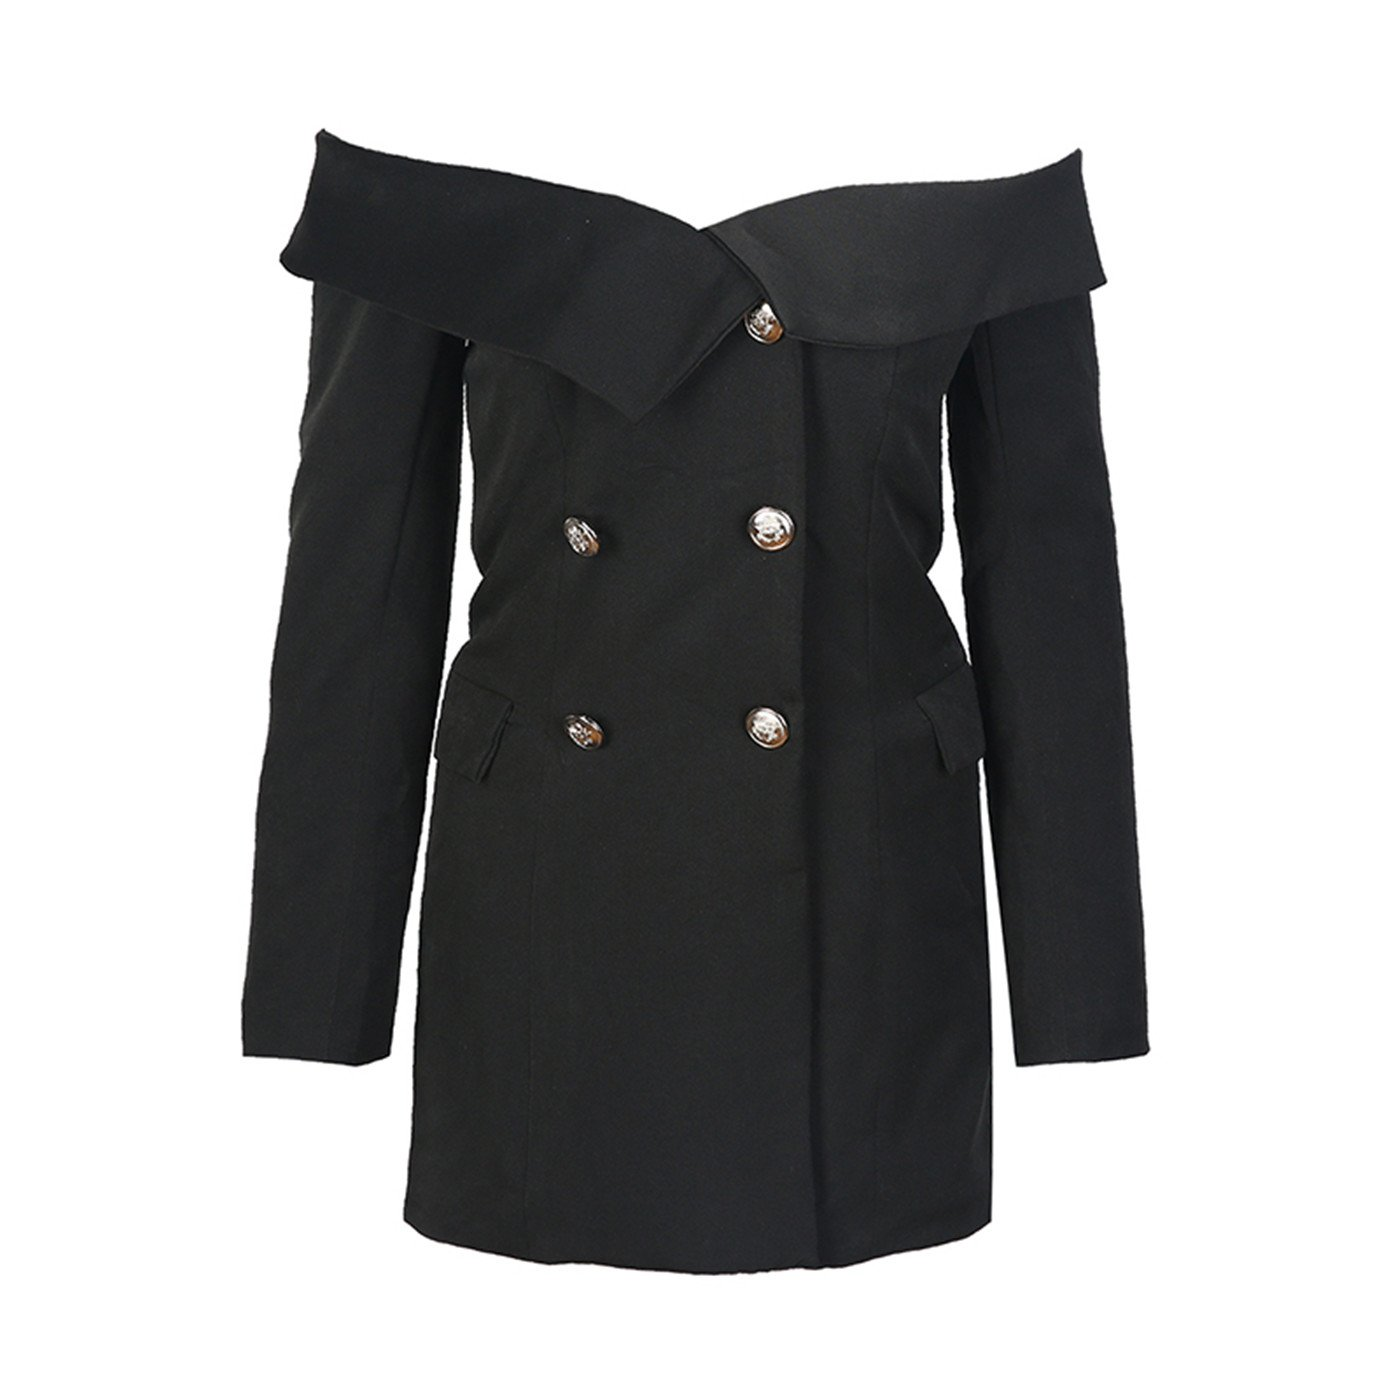 38e6552a06d7 Sexy Off The Shoulder Foldover Double Breasted Blazer Jacket Coat Suit Top  Black 2XL at Amazon Women's Clothing store: